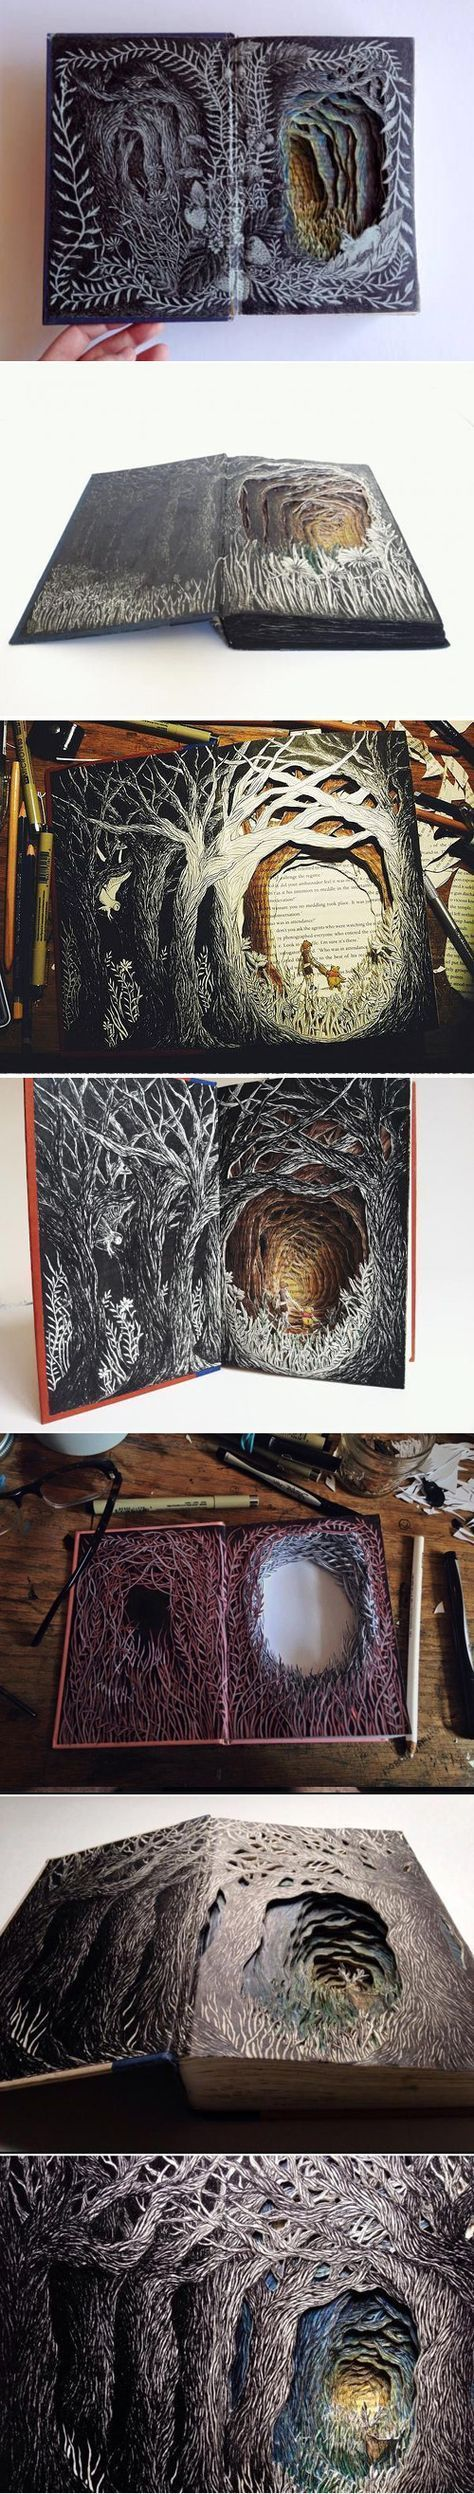 My Owl Barn: 3D Illustrations from Discarded Books by Isobelle Ouzman